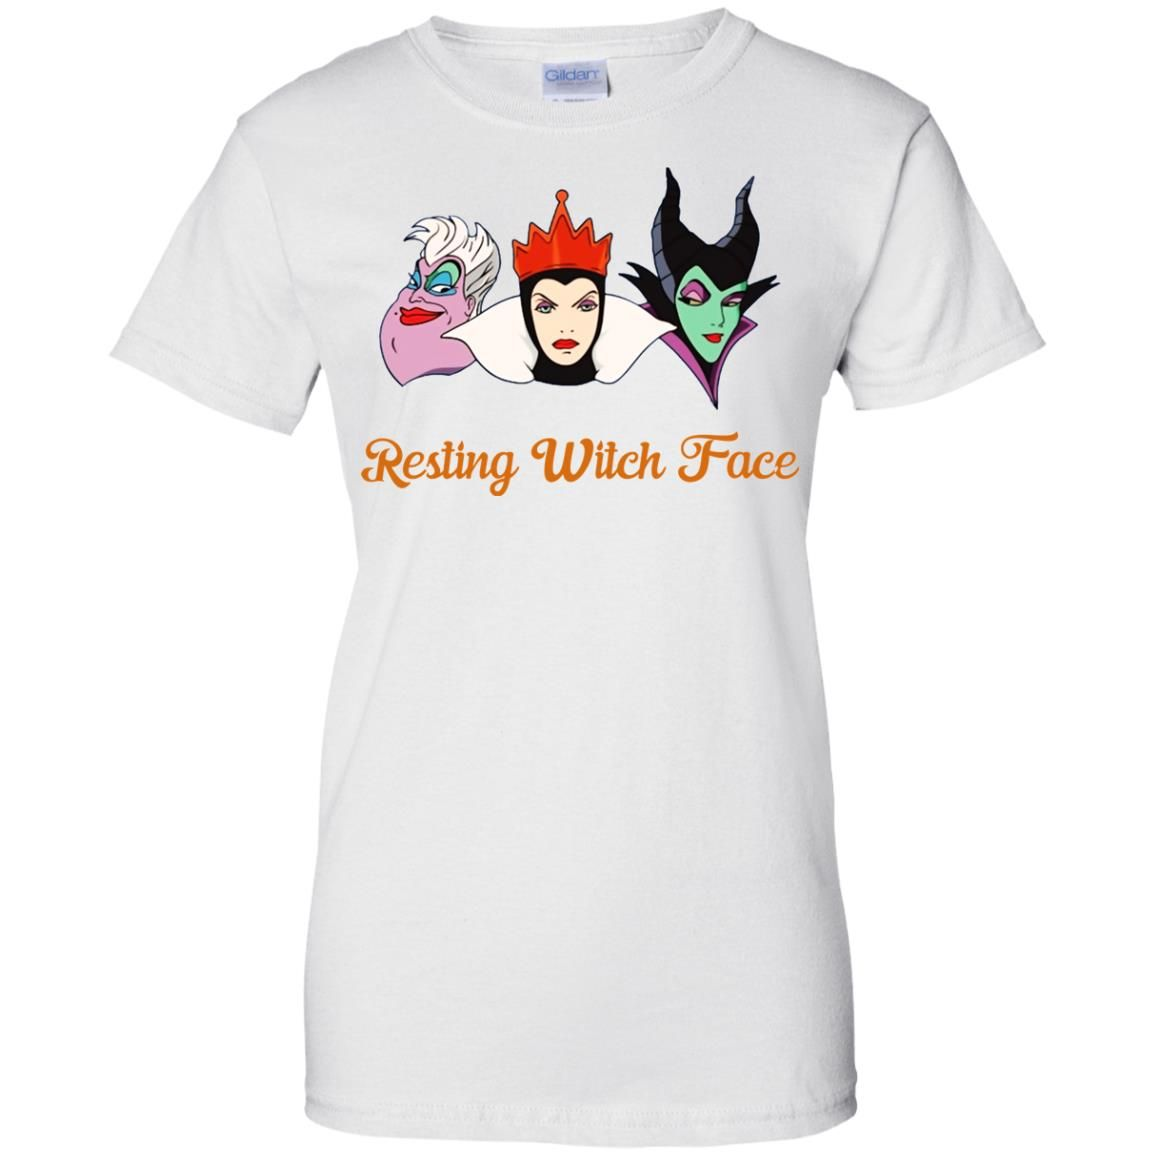 image 1964 - Resting Witch Face shirt for Halloween: Ursula, Maleficent, Evil Queen